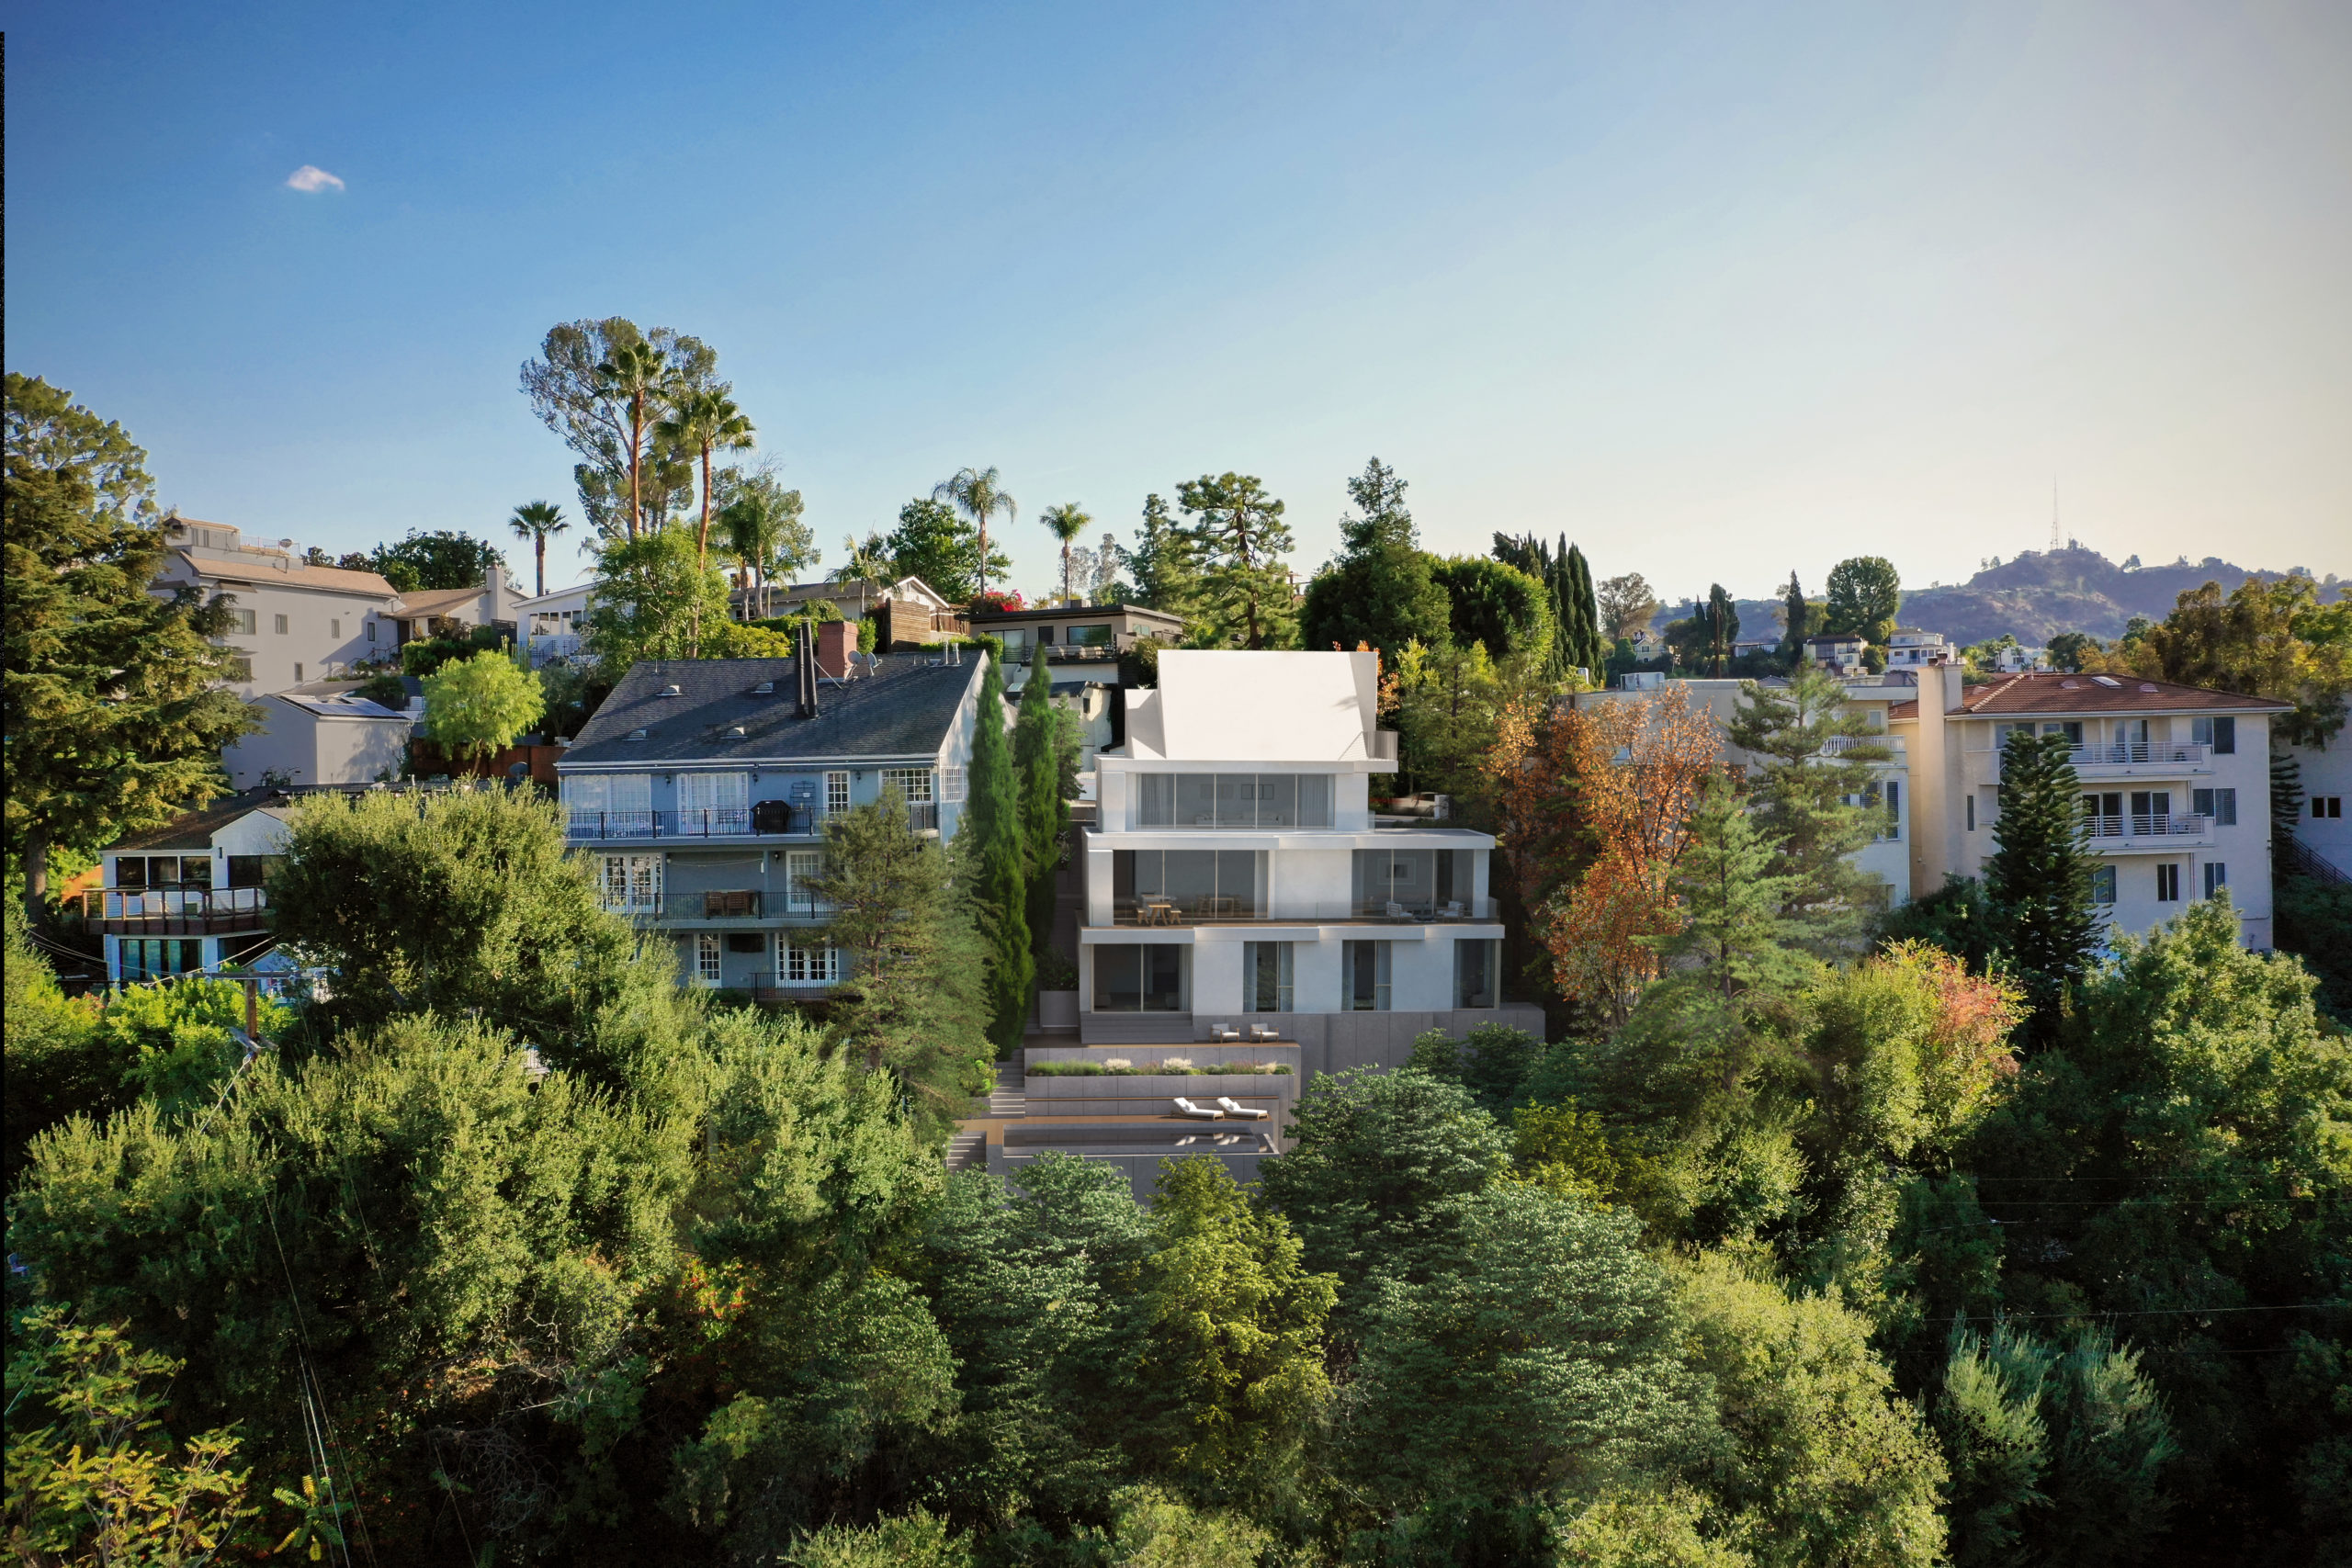 spatial practice architecture office Los Angeles Hong Kong cascading residence hills los angeles usa Hollywood hills lifestyle trees